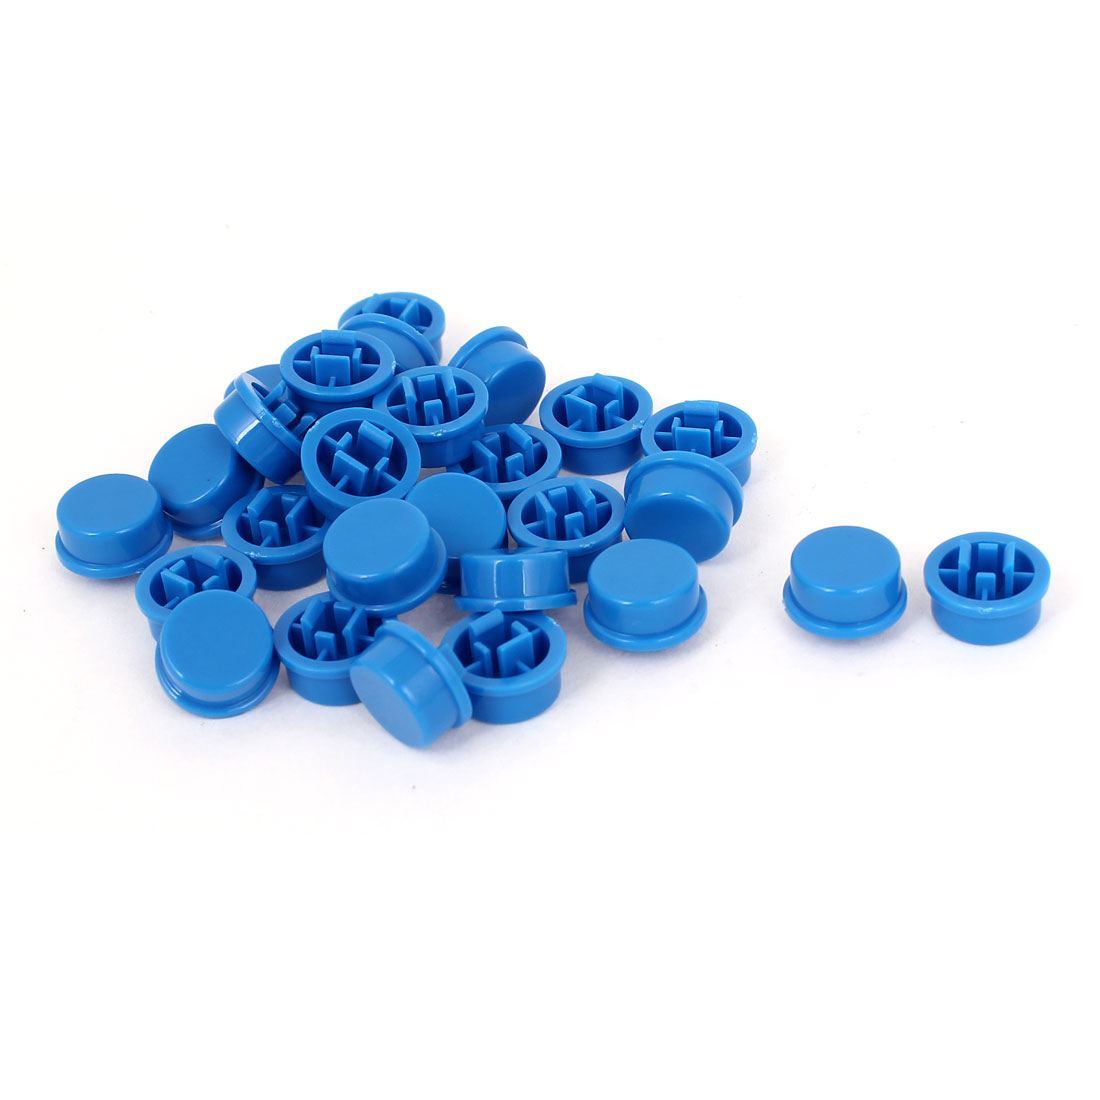 28Pcs Blue Plastic Touch Tactile Switch Button Protect Cover Caps